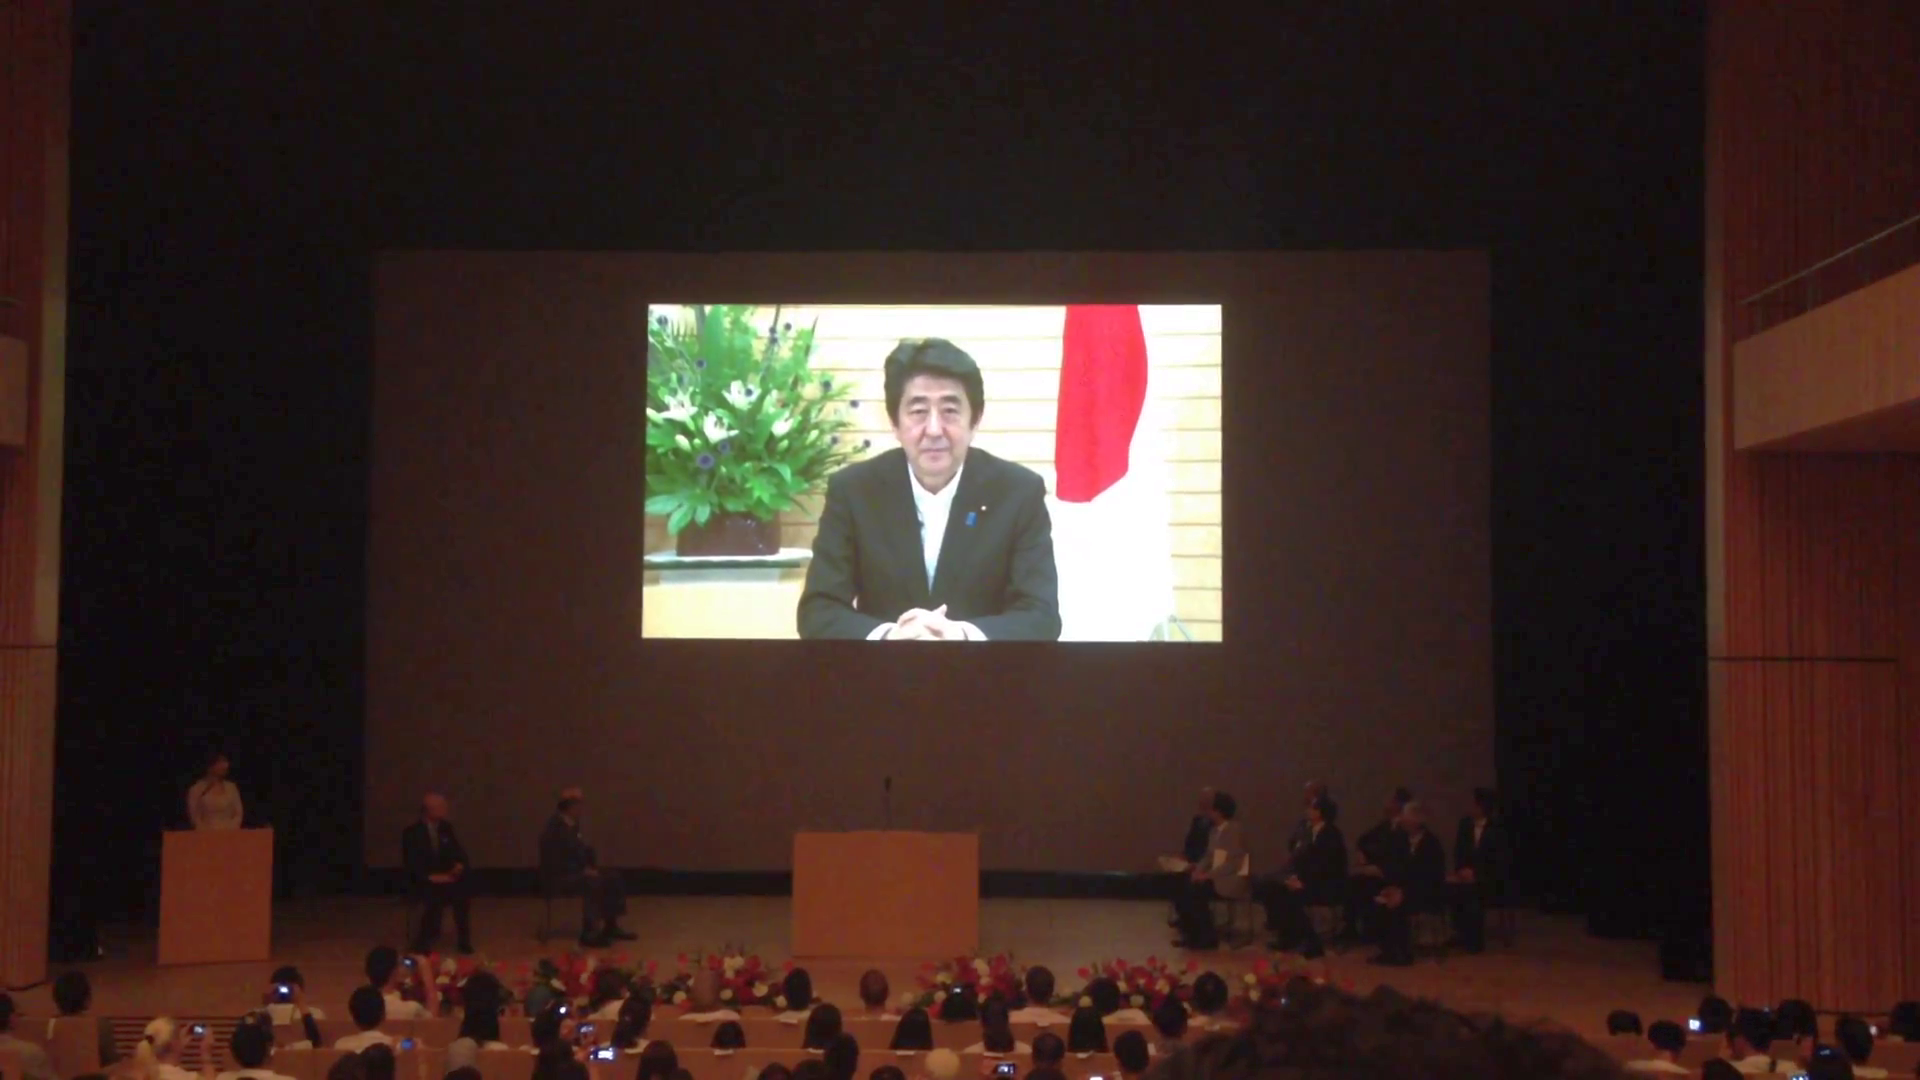 Prime Minister Shinzo Abe greets the Japan TENT participants.